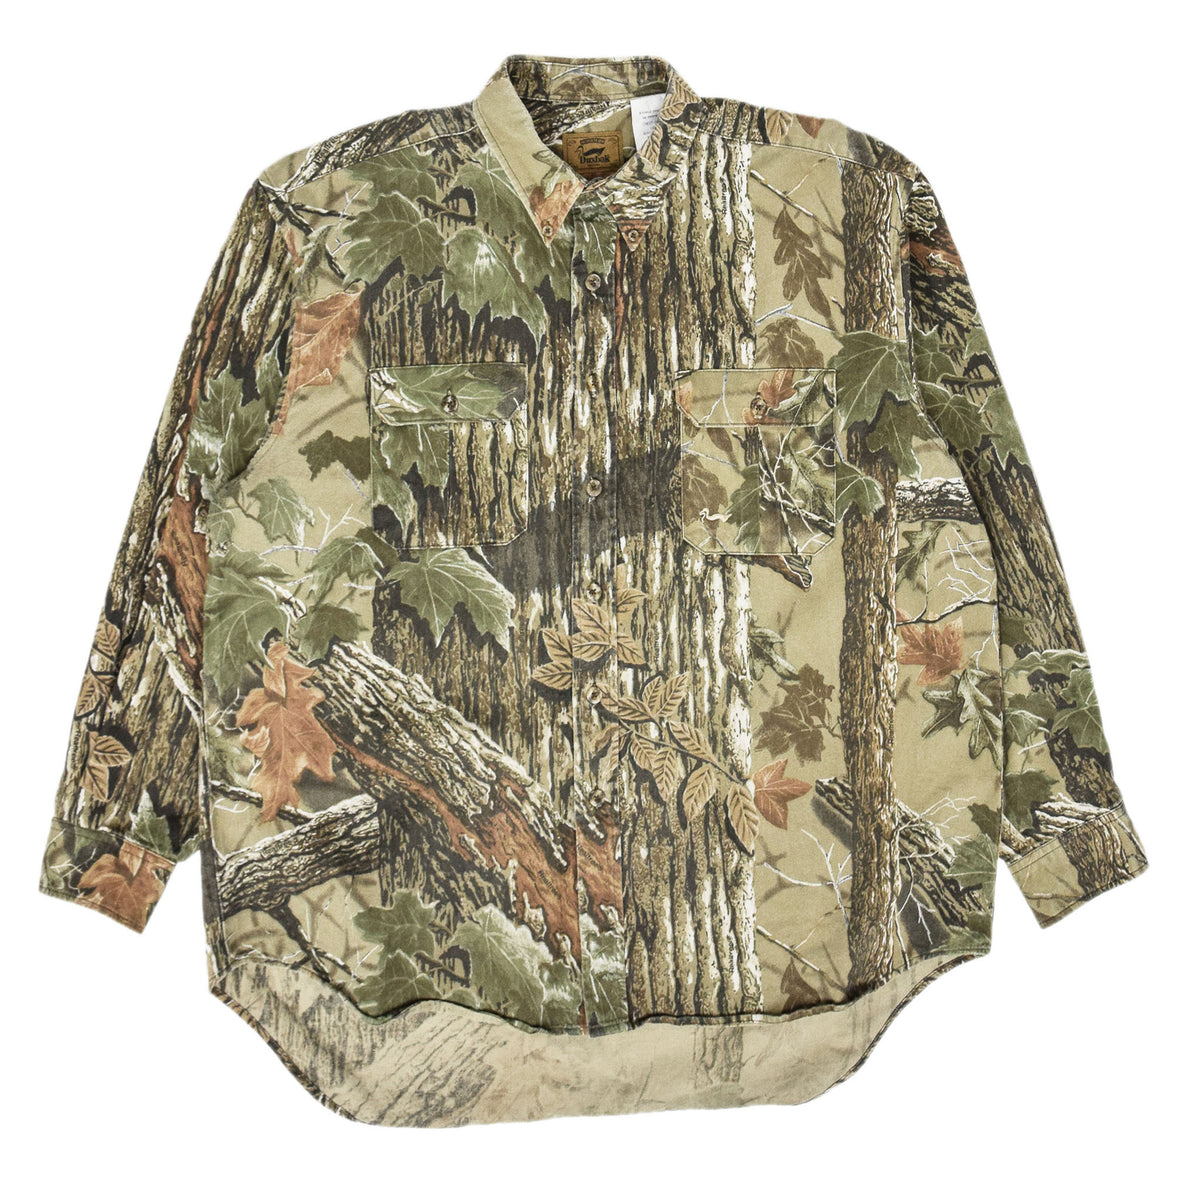 Vintage Duxbak Tree Leaf Camo Hunting Shooting Cotton Long Sleeve Shirt XL front